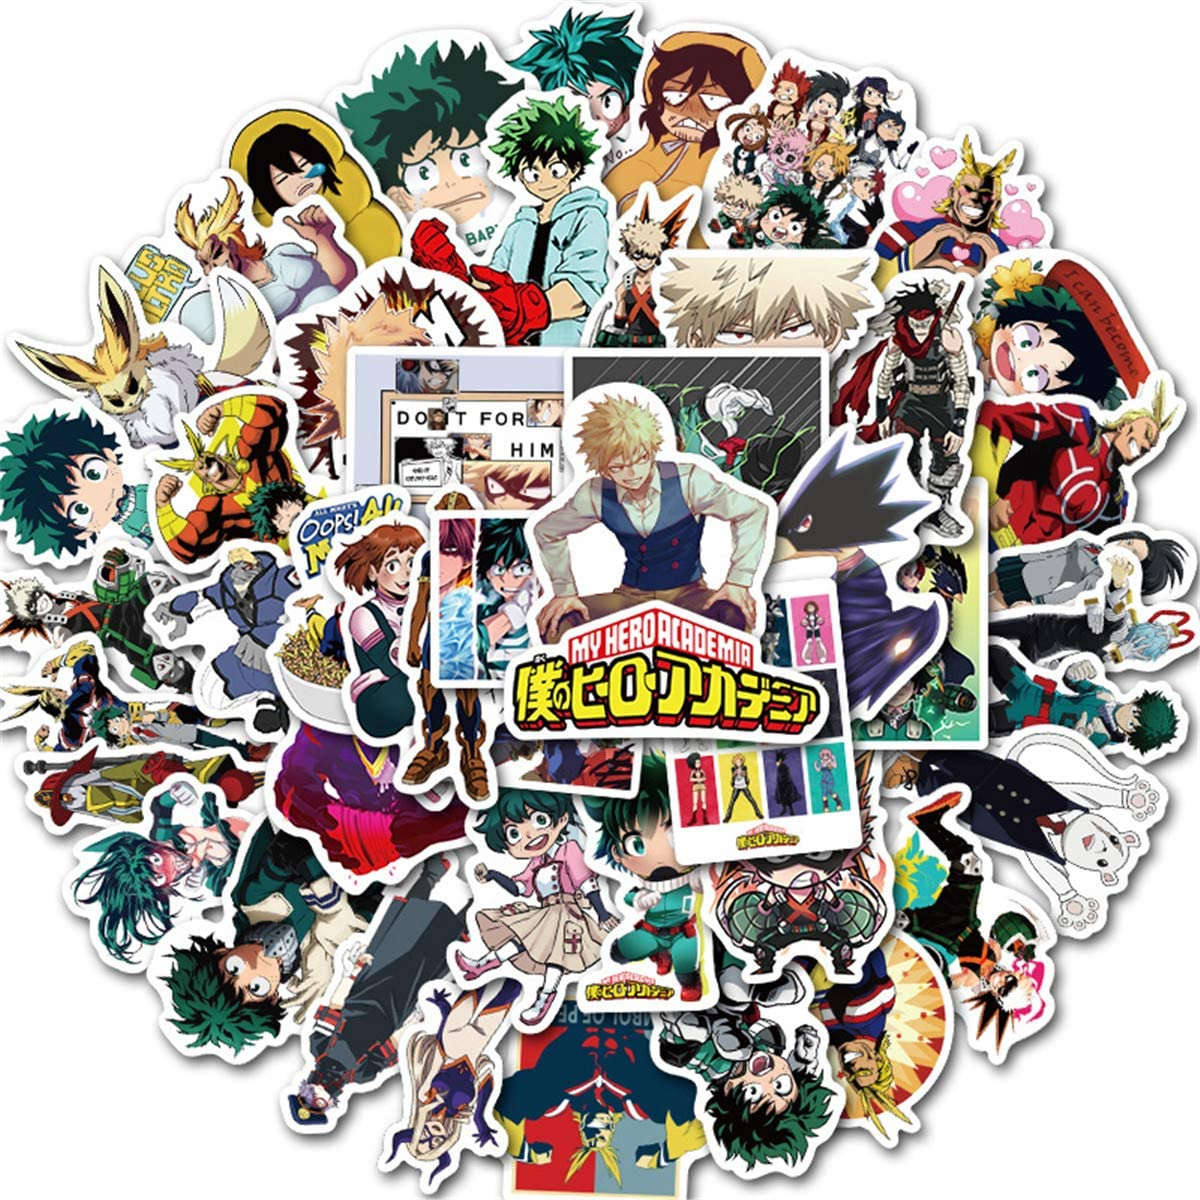 50PCS Mixed Different My Hero Academia Stickers Network Popular Meme Anime Cartoon Sticker for Kids Laptop Skateboard Toy Stickers (My Hero Academia)